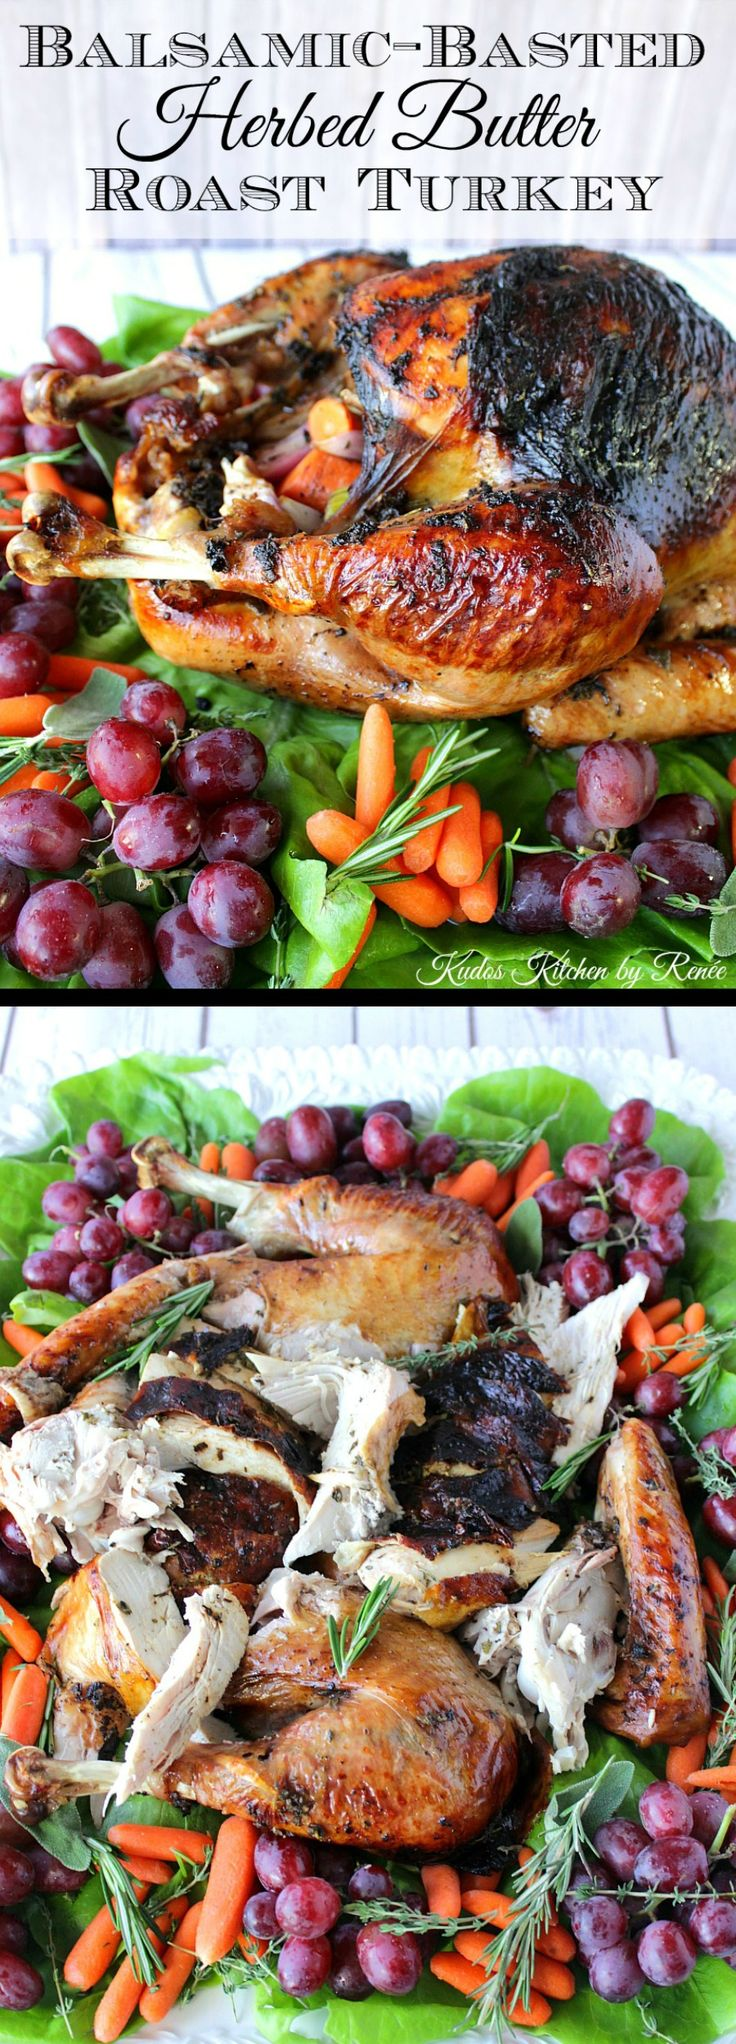 This easy to make Balsamic-Basted Herbed Butter Roast Turkey will be the most succulent, moist and flavorful turkey you've ever made. You have my word on it! - Kudos Kitchen by Renee - www.kudoskitchenbyrenee.com